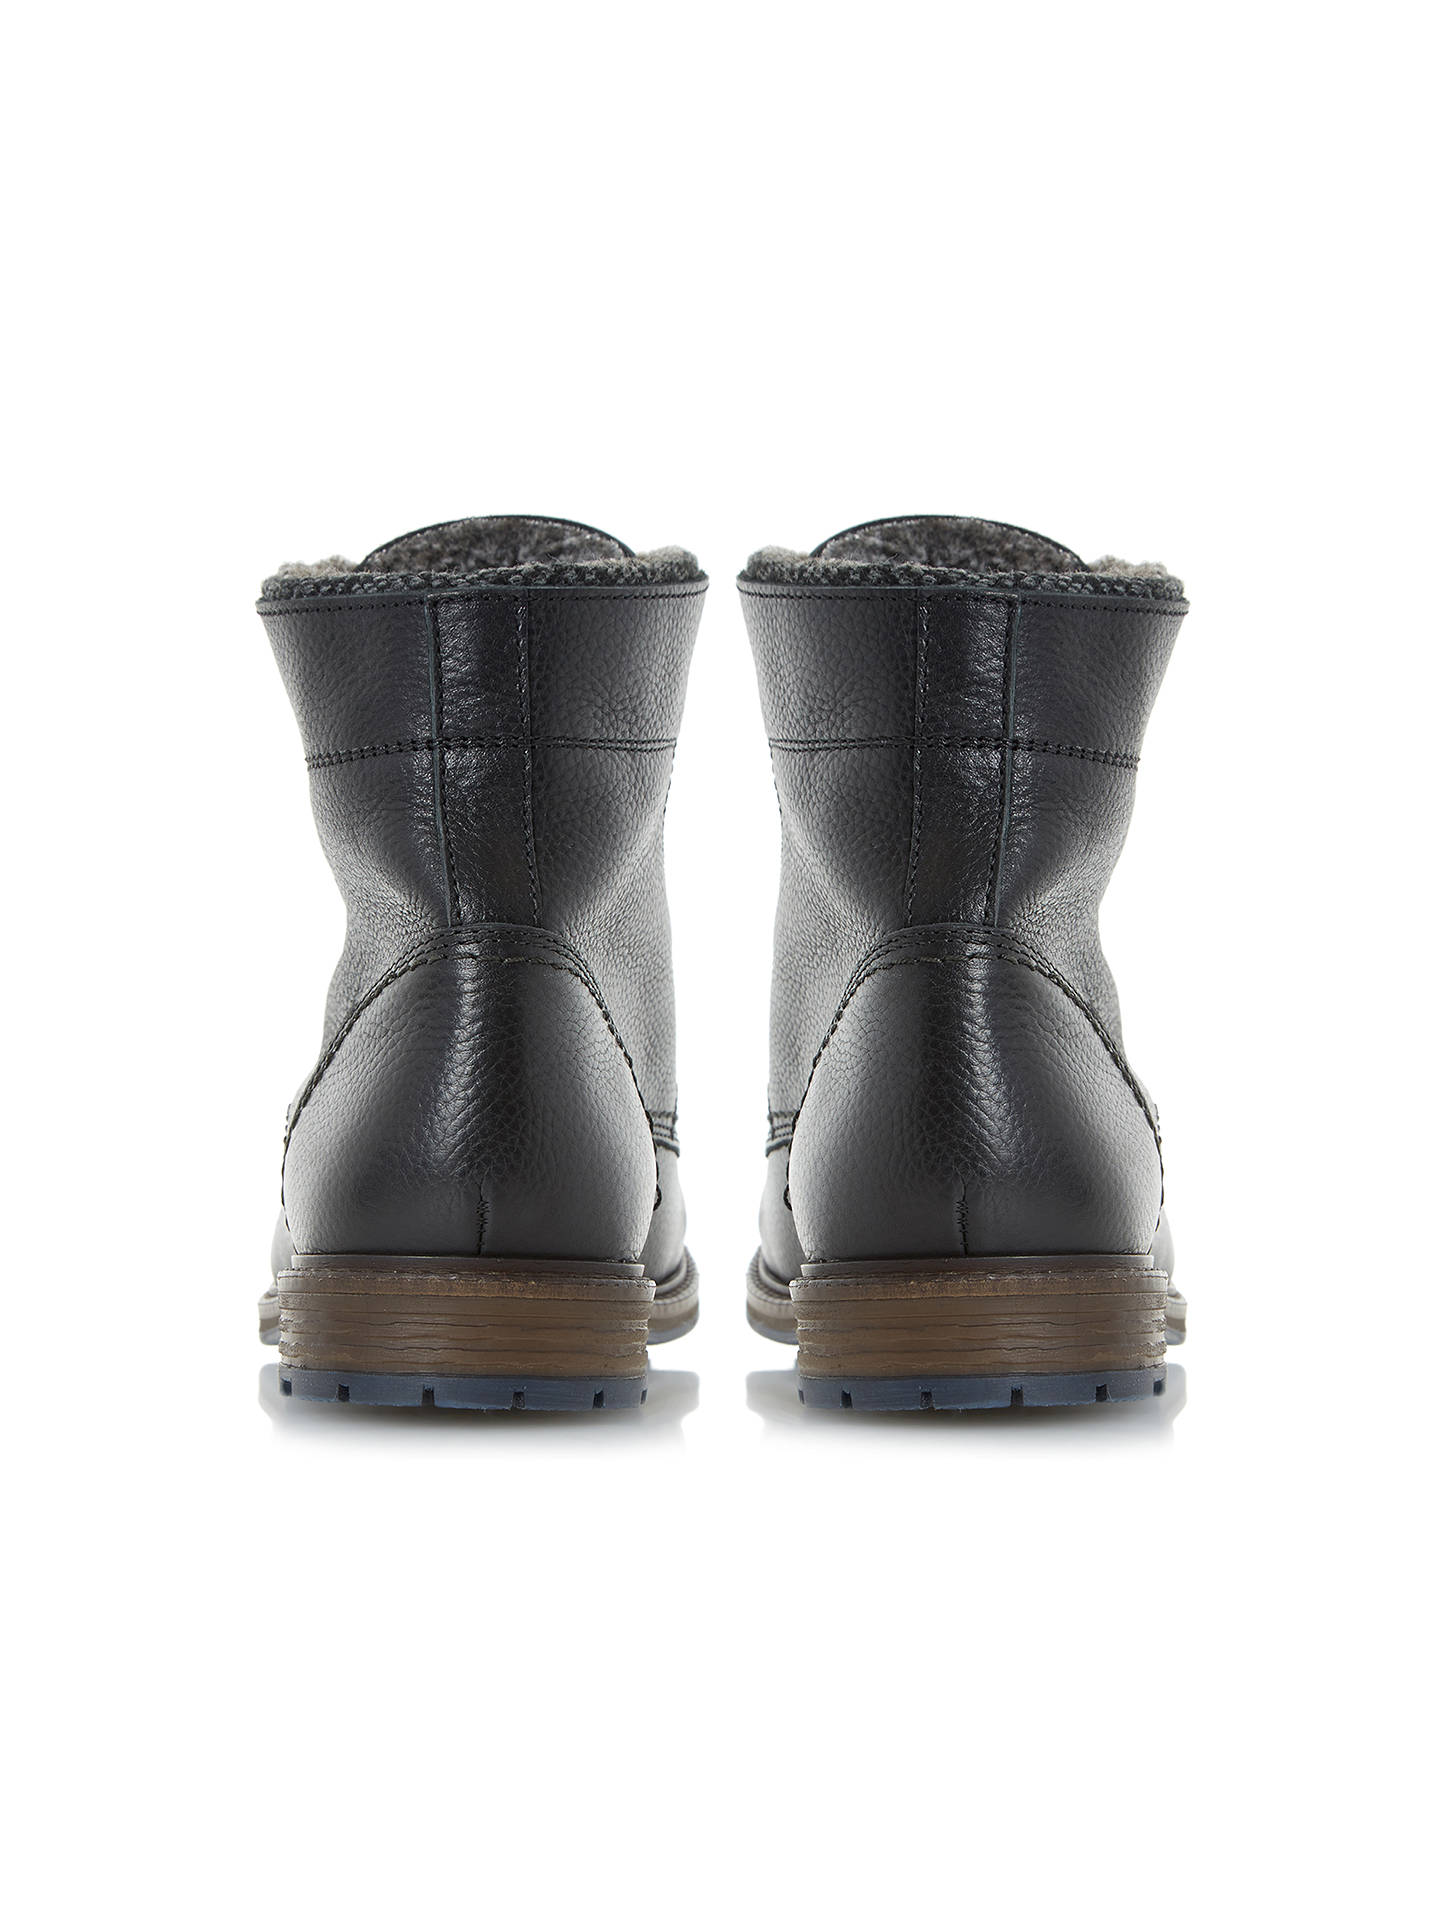 BuyDune Chichester Double Collar Lined Boots, Black, 6 Online at johnlewis.com